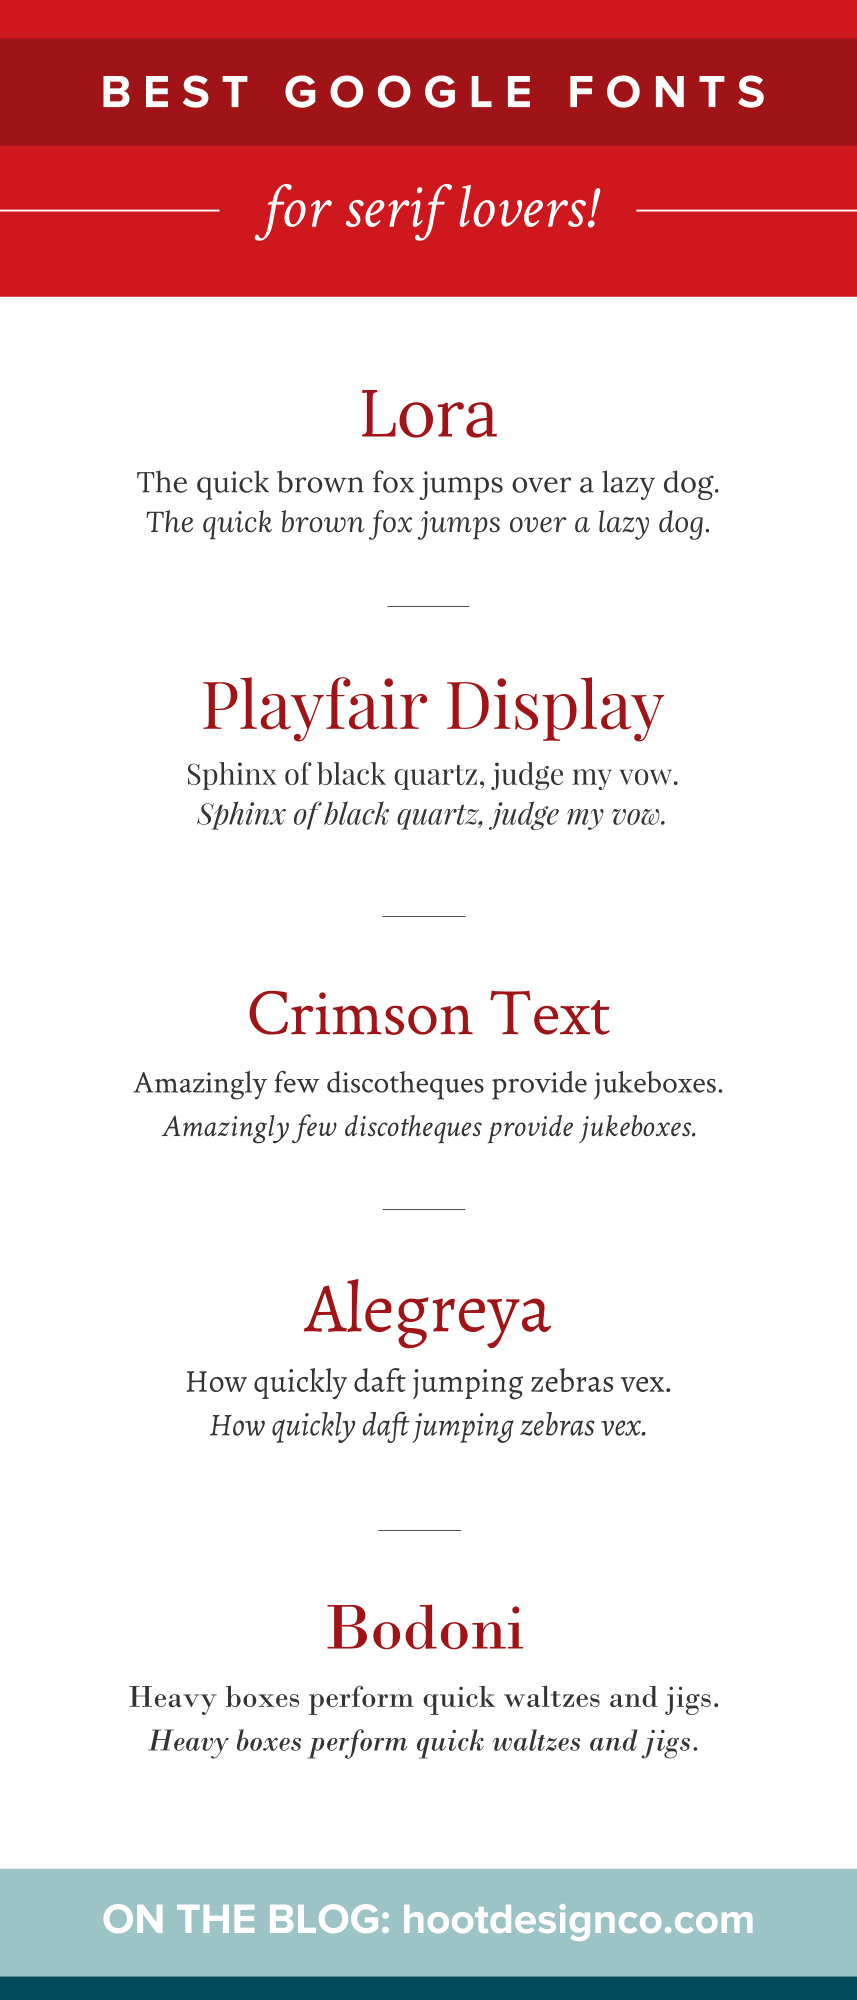 Our+fave+serif+Google+fonts+–%C2%A0free+to+use!+We+love+these+because+they're+super+readable,+pleasantly+balanced,+and+have+great+true+italics.+Super+love.png